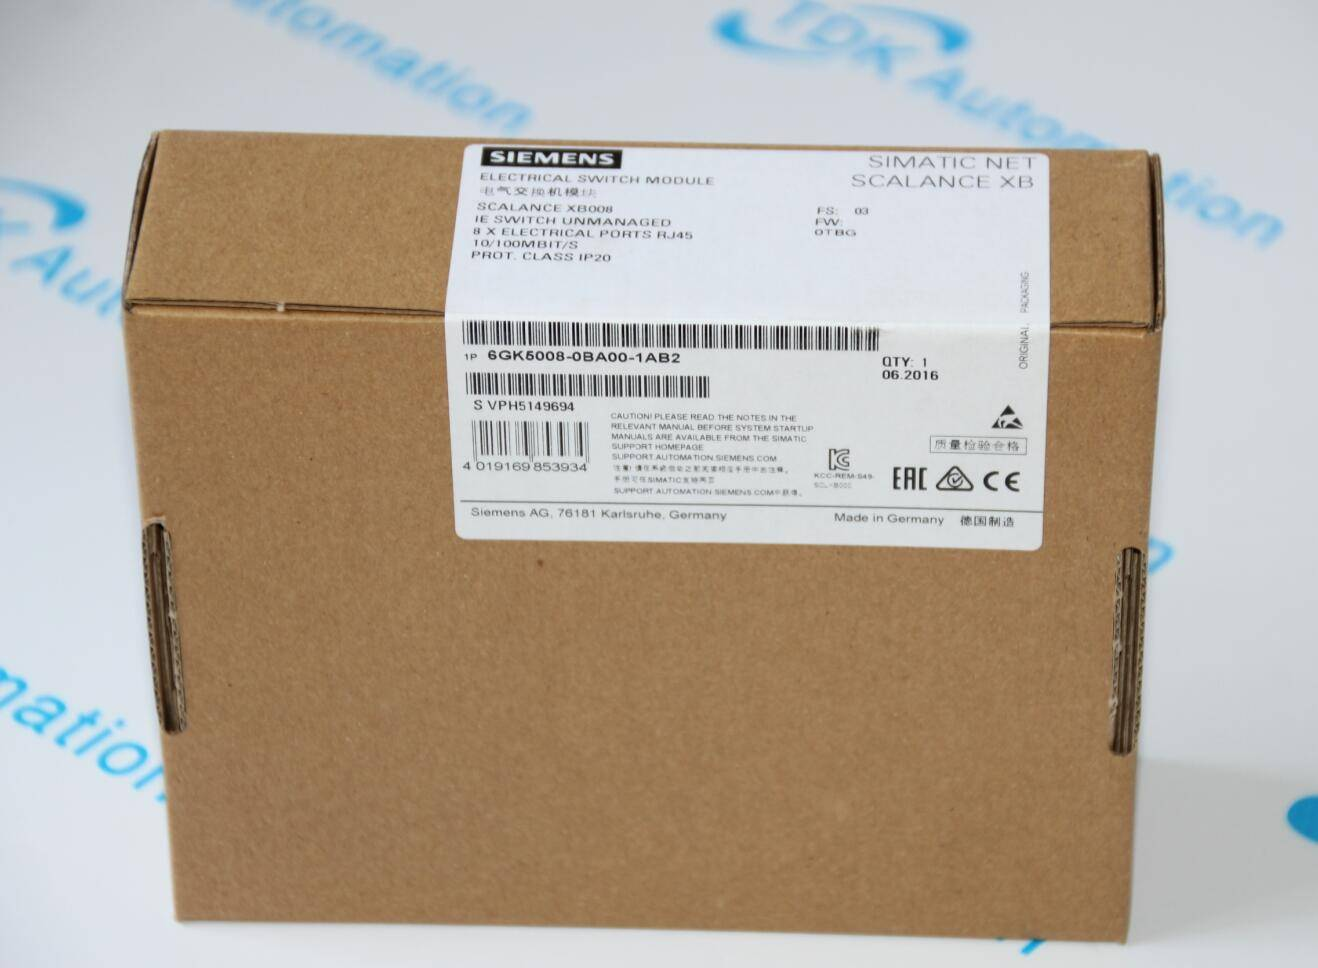 SIEMENS 6GK5008-0BA00-1AB2 SCALANCE XB008 IE AWITCH UNMANAGEO ELECTRICAL SWITCH MODULE